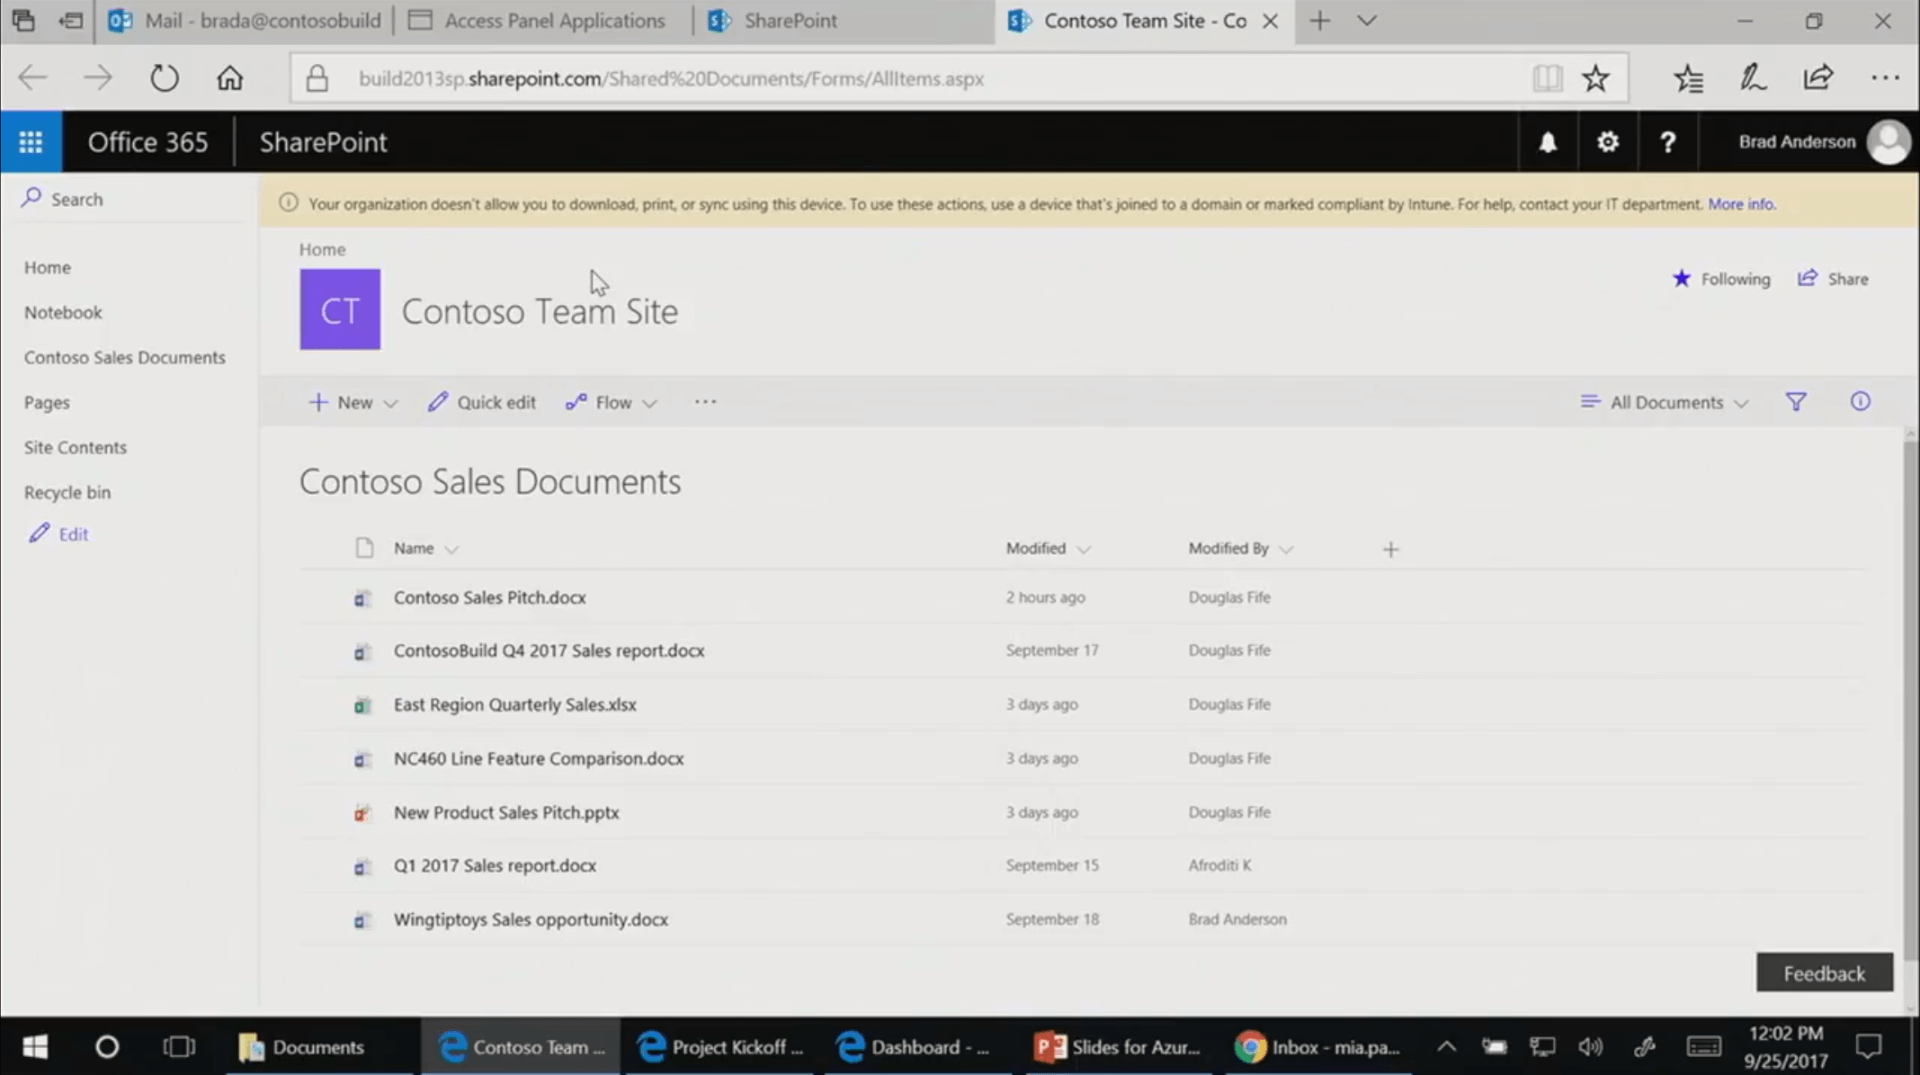 Texte de remplacement généré par une machine: e Mail • brada@contosobuild I Access Panel Applications I SharePoint bulld2013spsharepoint.com/Shared%20Documents/Forms/Allltemsaspx Contoso Team Site -co 3 ? Brad Anderson x I Office 365 P Search Home Notebook Contoso Sales Documents Pages Site Contents Recycle bin Edit SharePoint (D Your organizatxm doesn•t anow you to pnnt. or sync this device. To use these act•ons use a device to a domaan or marked compuant by For contact your IT department. Mote info. Home Contoso Team Site + New Quick edit Flow v Contoso Sales Documents Name Contoso Sales Pitchdocx ContosoBuild Q4 2017 Sales report.docx East Region Quarterly Sales.xlsx NC460 Line Feature Comparison.docx New Product Sales Pitch.pptx QI 2017 Sales report.docx Wingtiptoys Sales opportunity.docx Documents contoso e project Kickoff 2 N'urs •go September 17 3 day•s ago 3 day•s ago 3 day•s Septembet S Septembet 18 Slides for Modified By Douglas Fife Douglas F Ife thugtas F Ife Douglas F 'te Douglas F de Afro-dctl K Bod lnbox - Following Share All Documents v 12:02 PM 9/25/2017